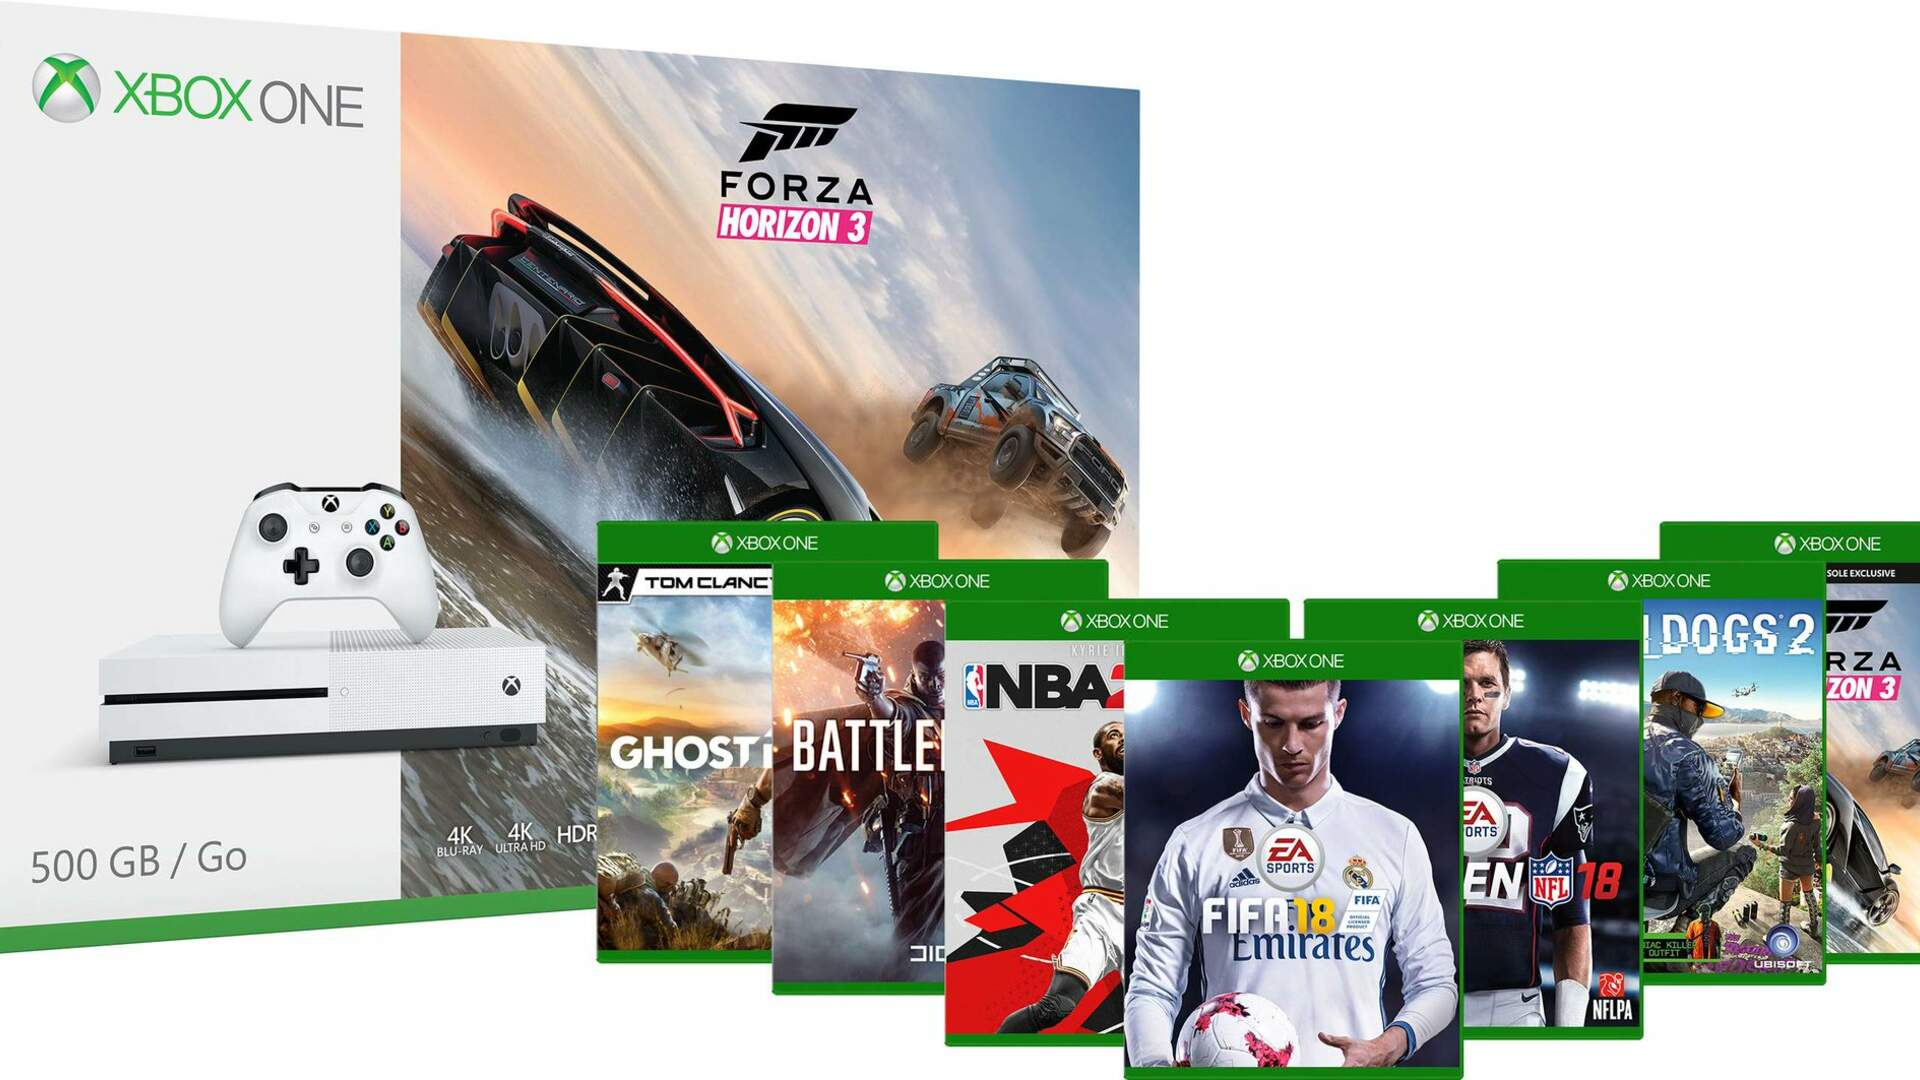 Get an Xbox One S with Three Games for $249 This Week Only